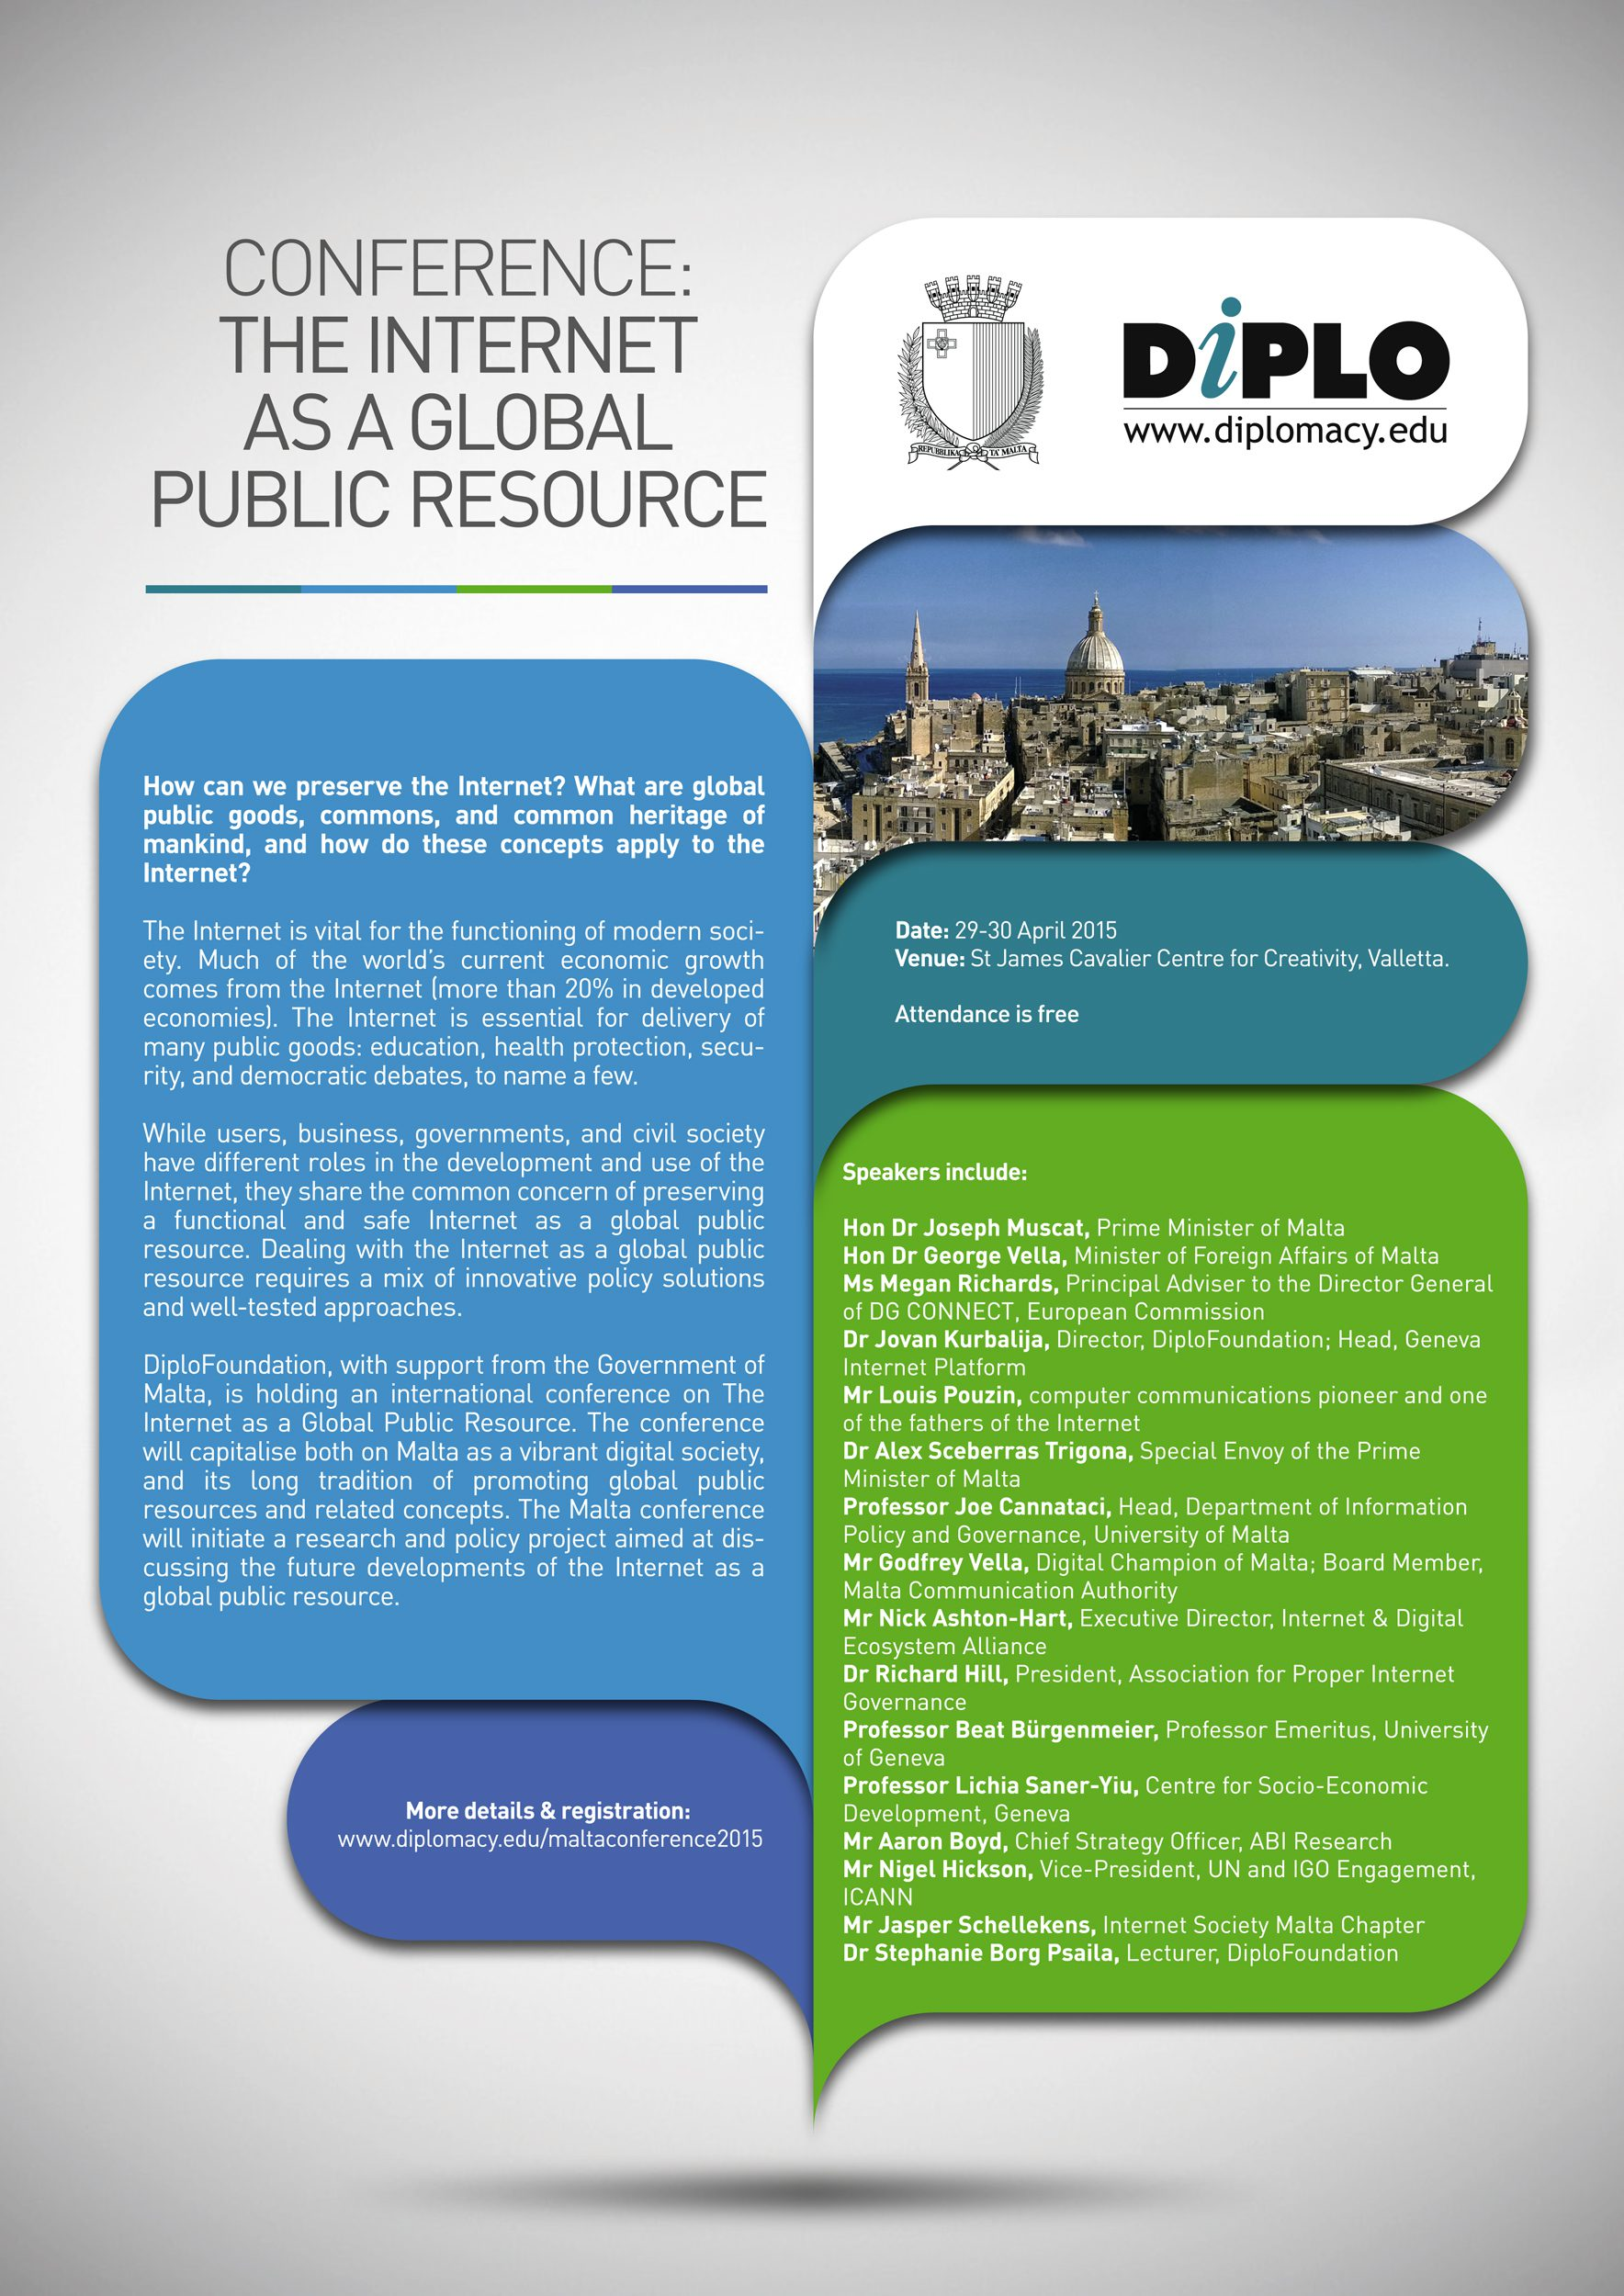 Diplo-Malta-conference-Internet-as-a-Global-Public-Resource-29-30-April-2015